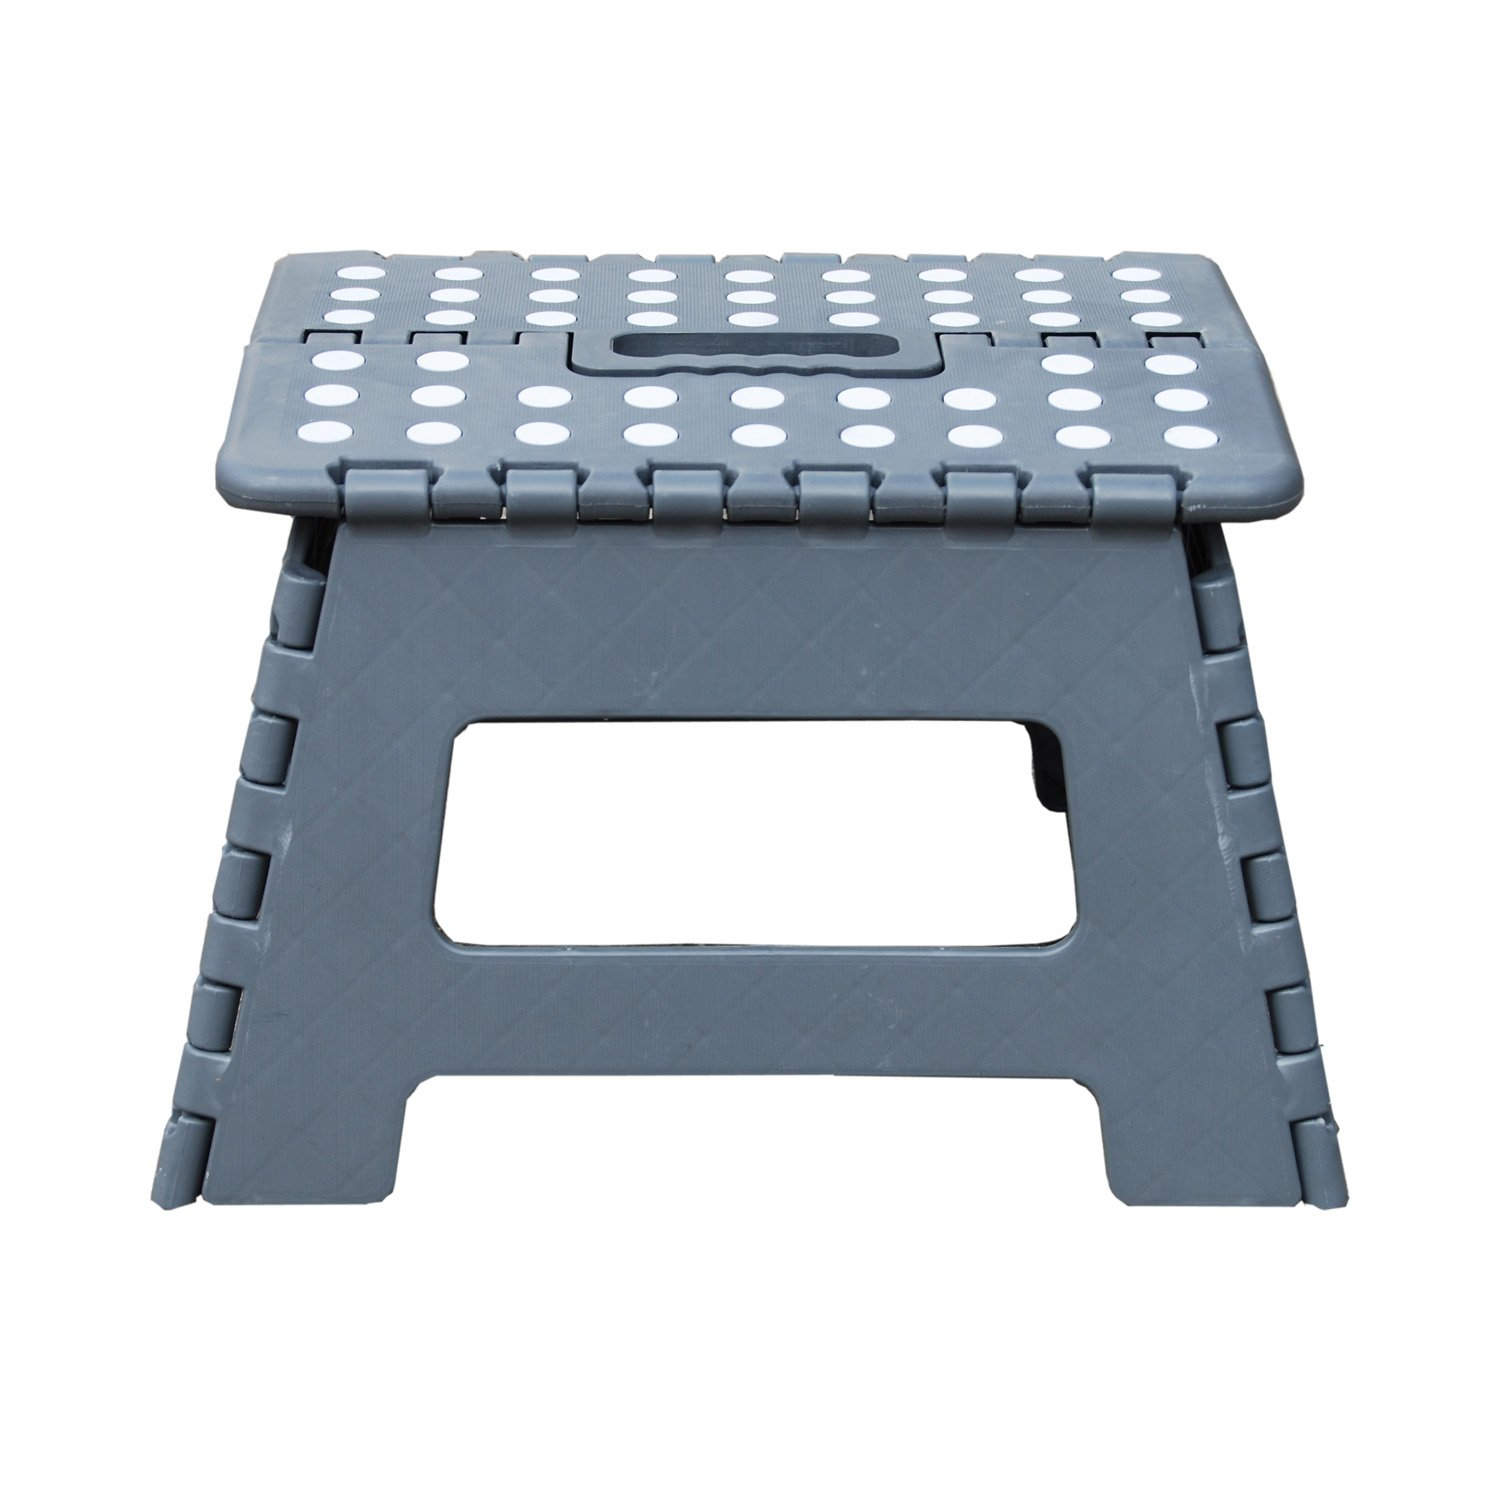 Folding Step Stool with handle 12